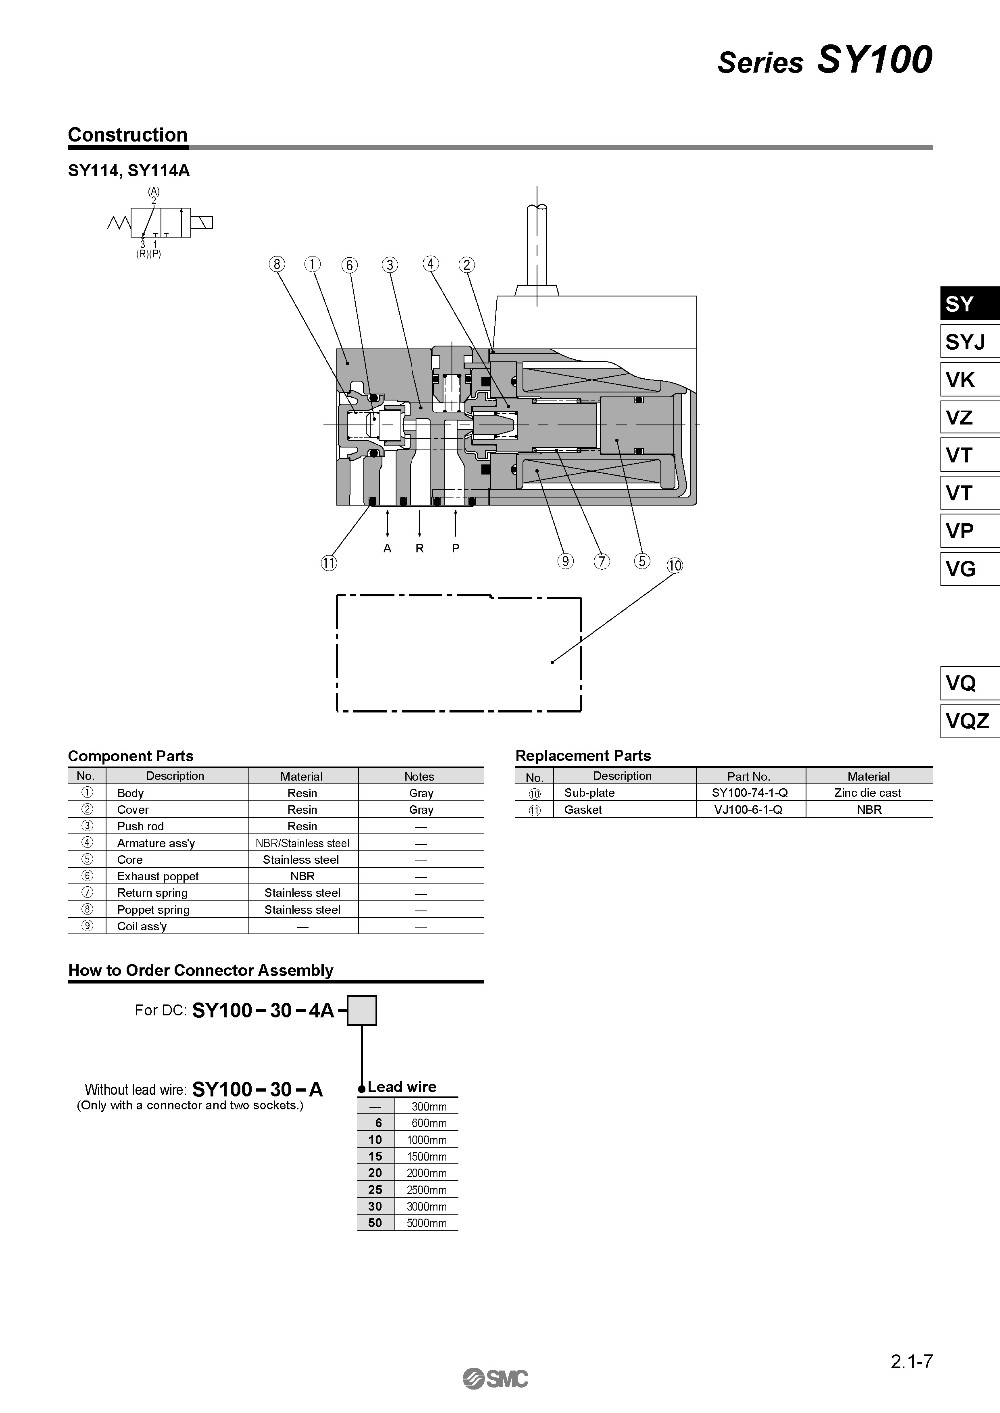 ᗚbrand new japan smc genuine valve sy114-5lzd-m3 - a486 aeproduct  smc  crossing arm wiring diagram